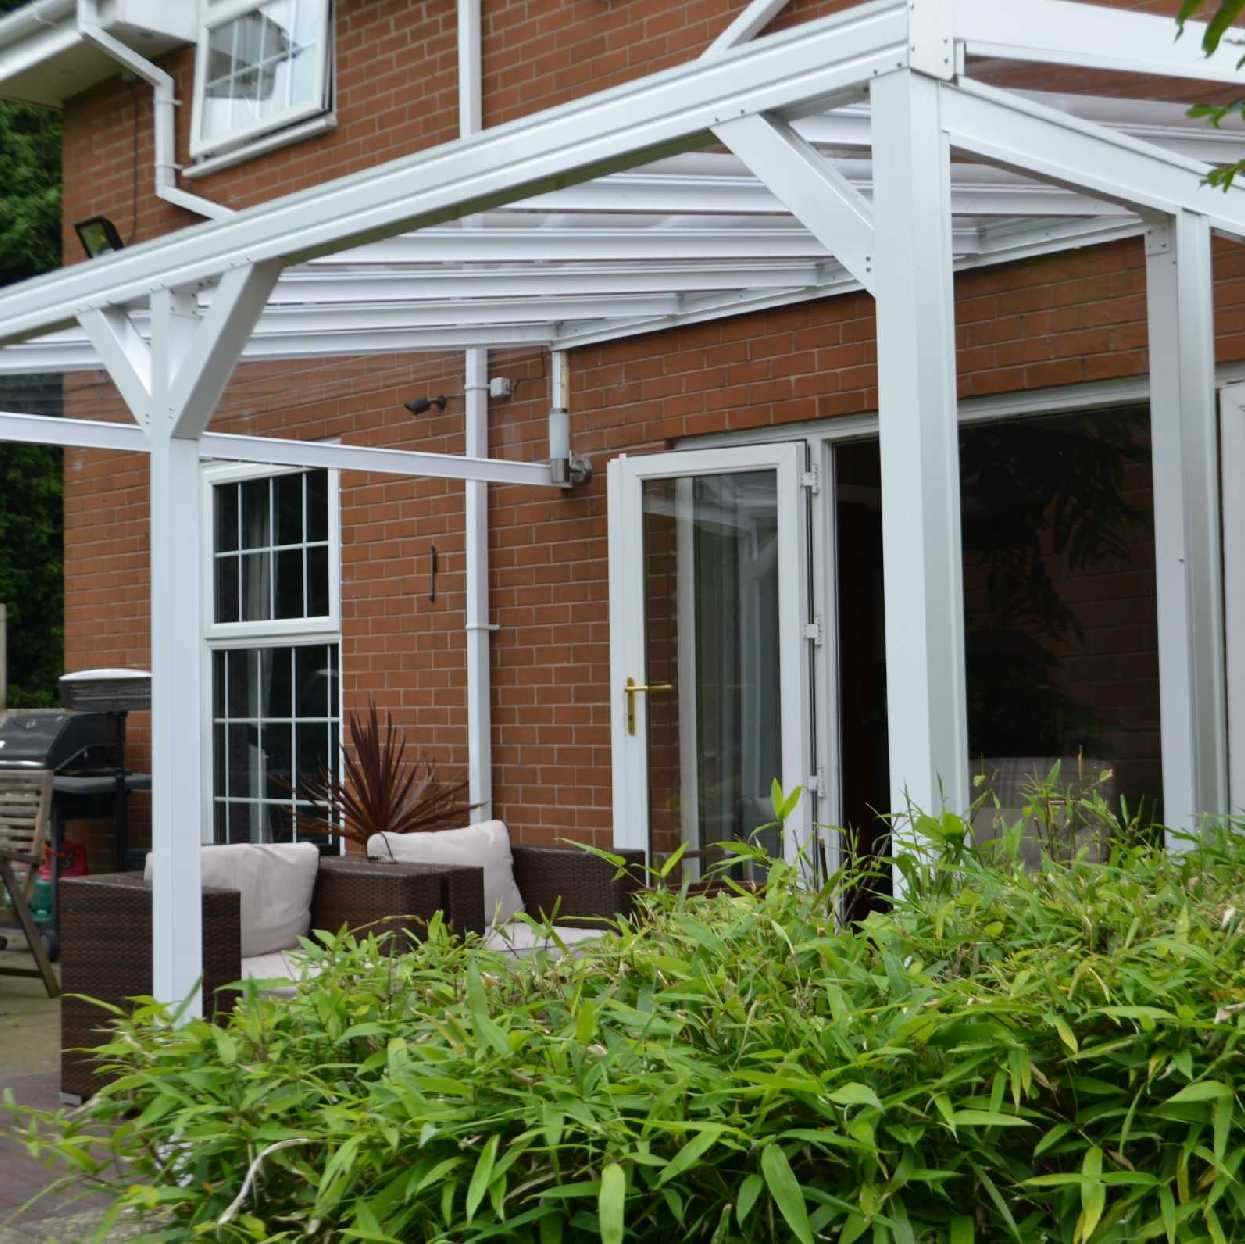 Omega Smart Lean-To Canopy UNGLAZED for 6mm Glazing - 6.3m (W) x 2.5m (P), (4) Supporting Posts from Omega Build